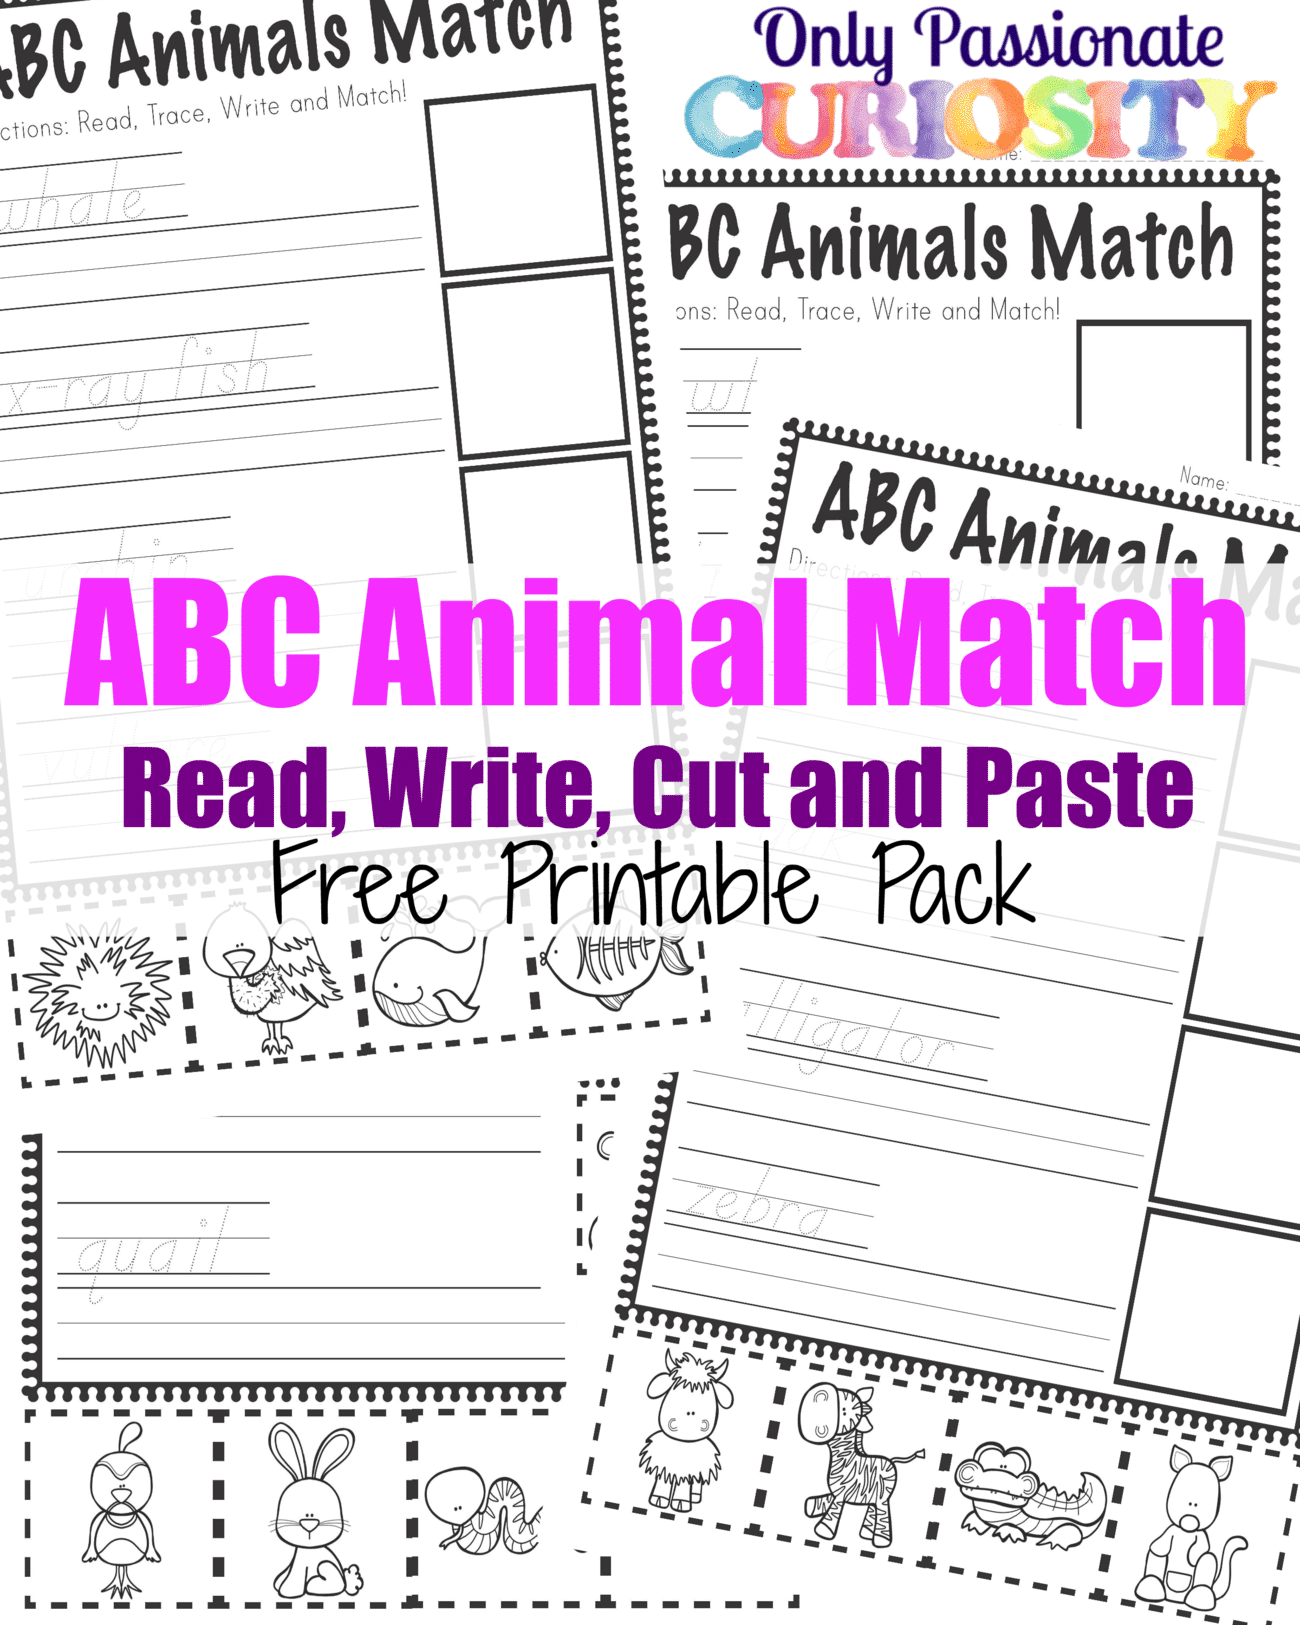 Abc Animals Read Write Cut And Paste Pack Abcs For Me Only Passionate Curiosity